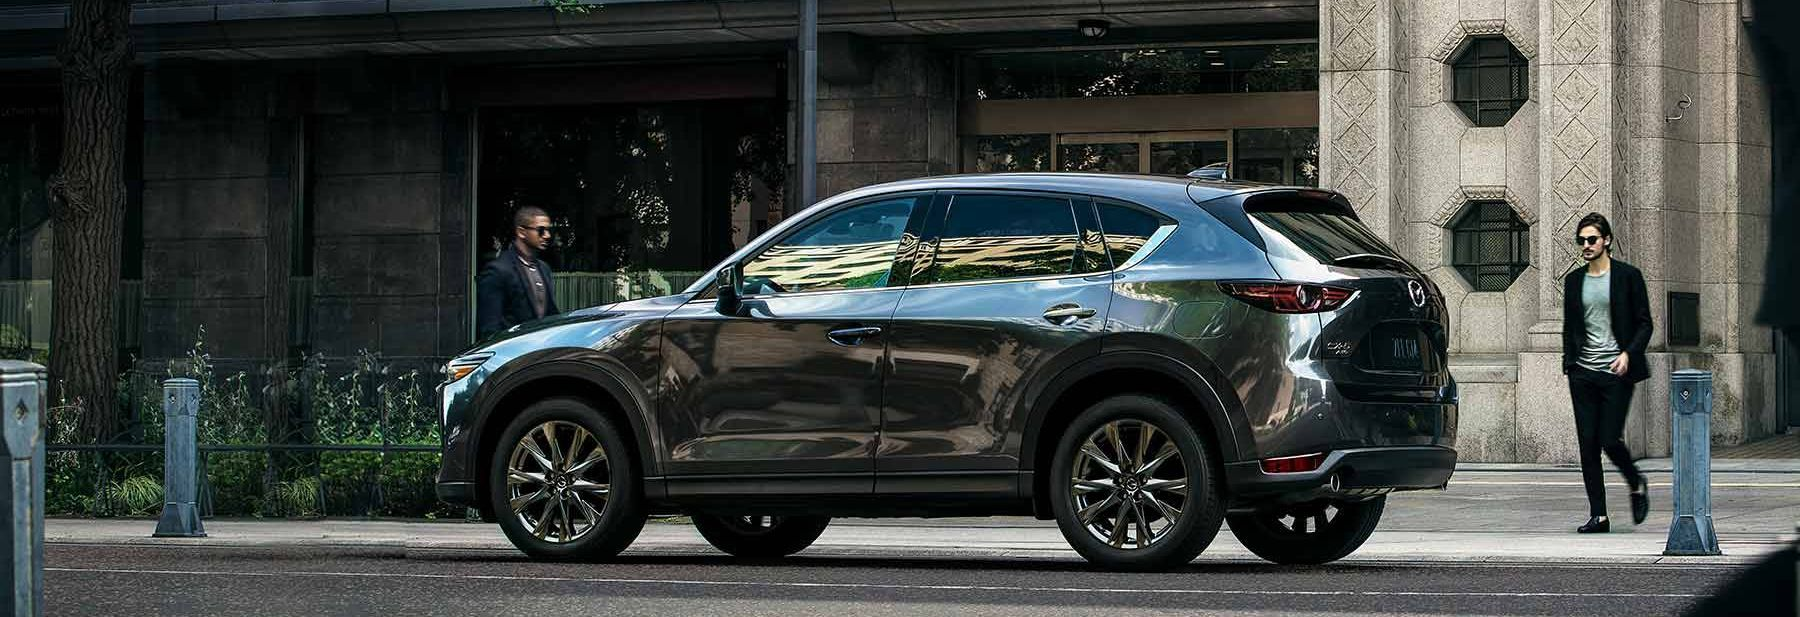 2019 Mazda CX-5 Financing near Mesa, AZ